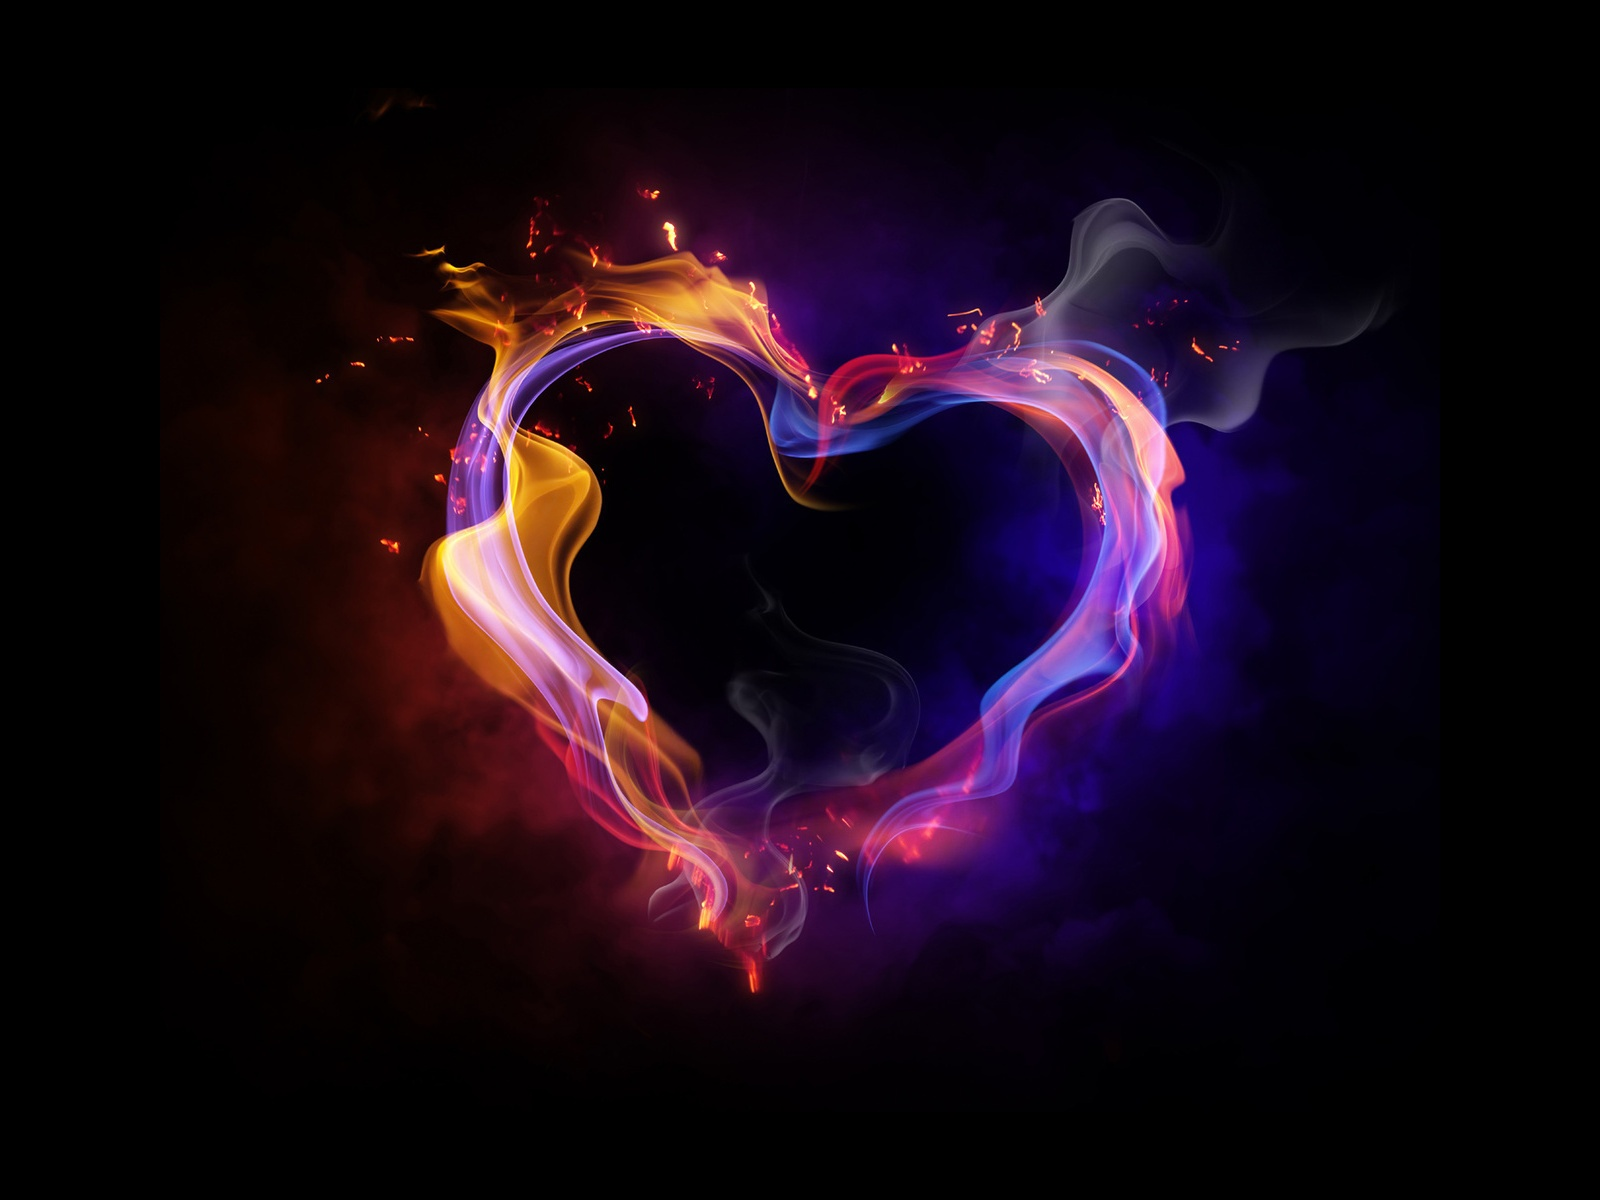 Fire Heart Love HD Wallpaper 1080p Walls 9